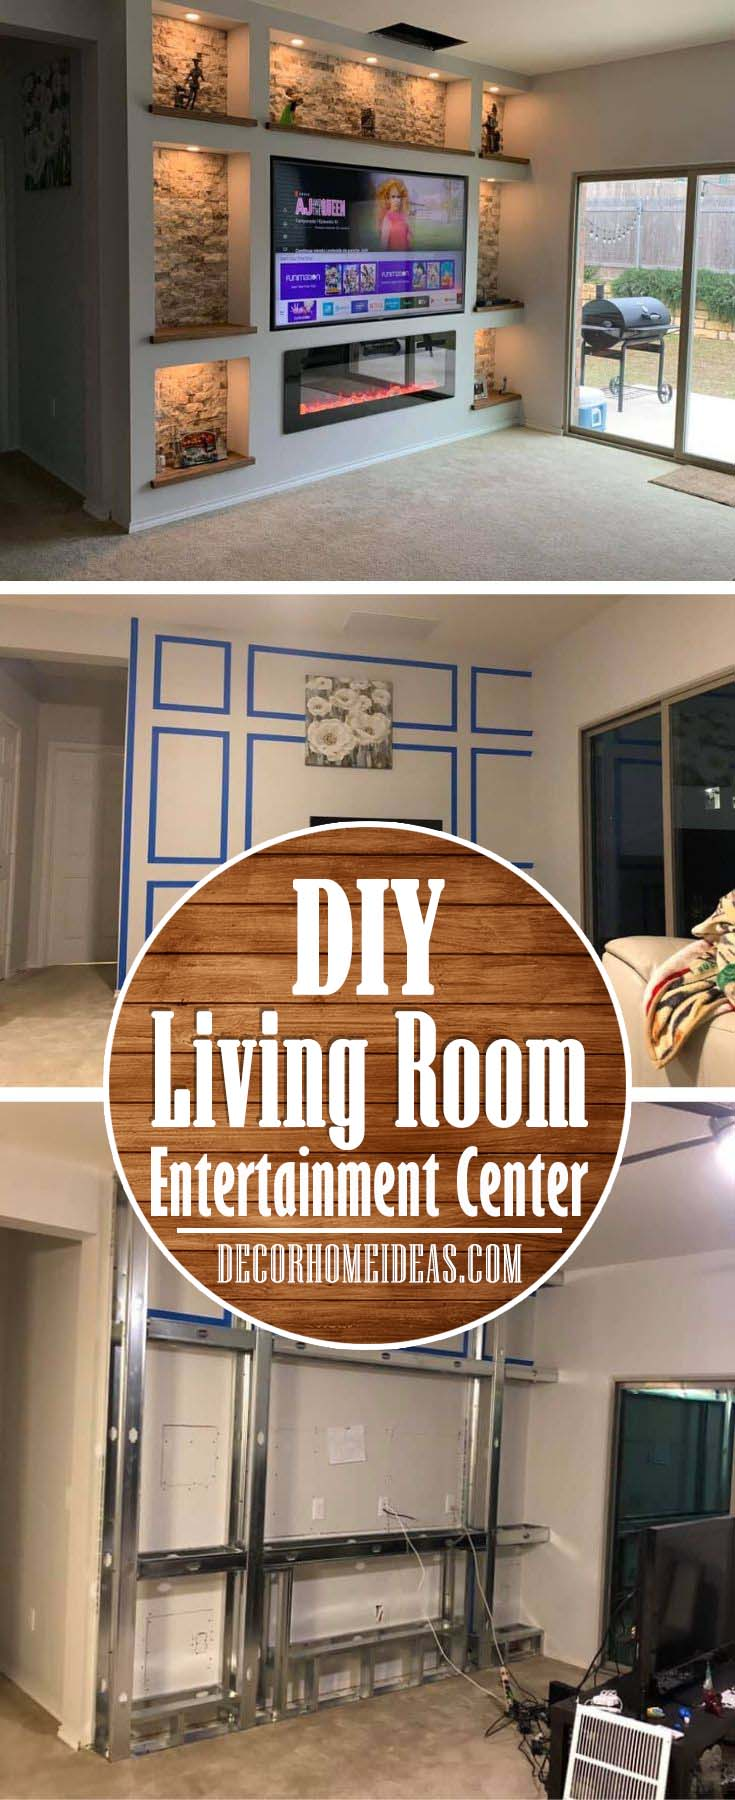 DIY Drywall Living Room Entertainment Center #diy #drywall #livingroom #tv #entertainment #decorhomeideas